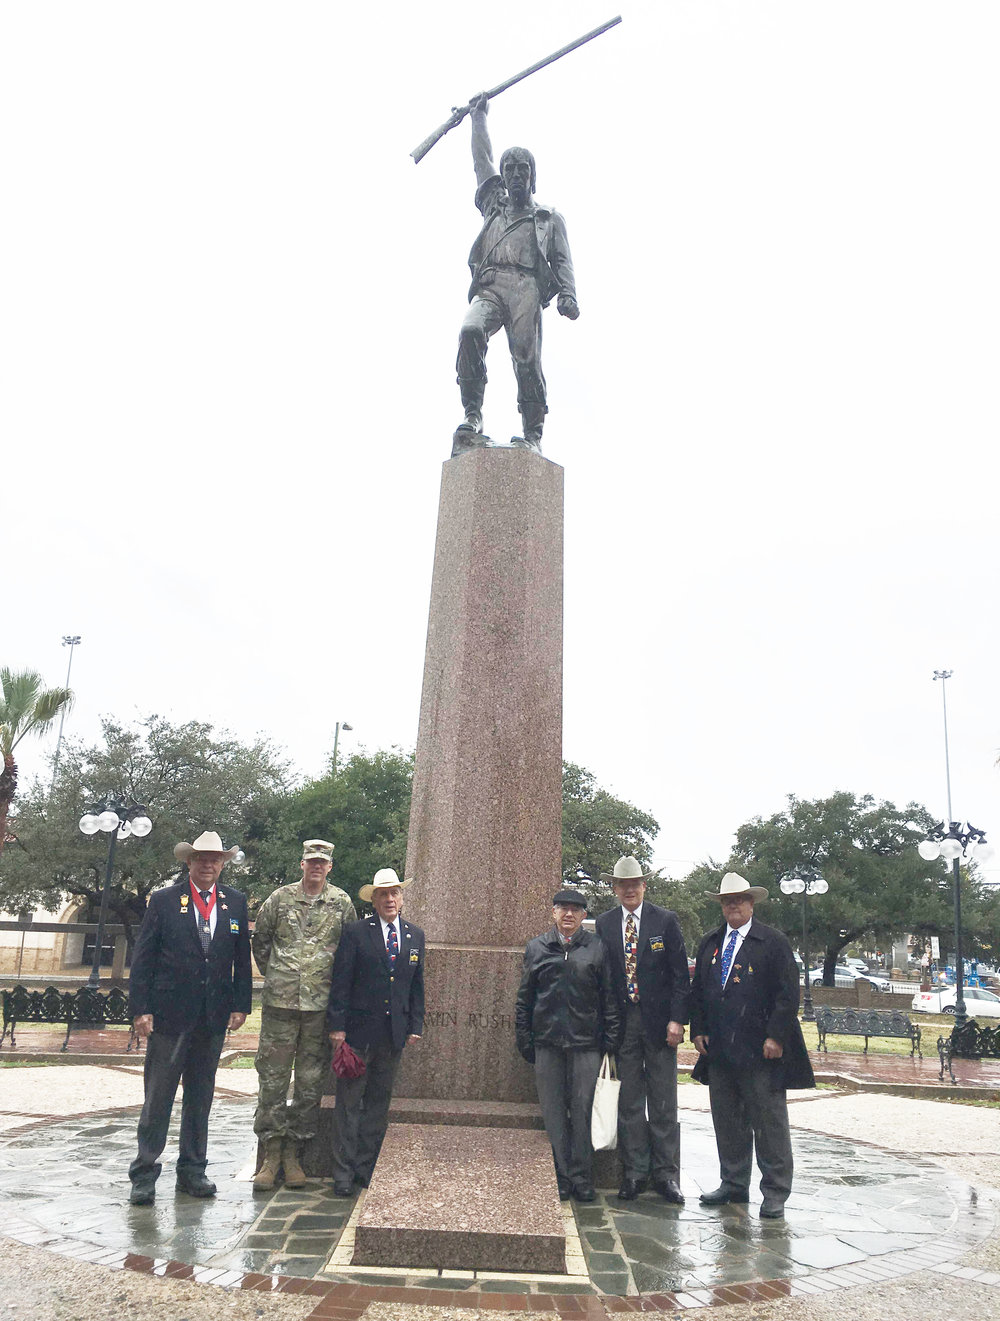 "Marketing Officer  Dick Weitzel,  2nd VP  Tom Jones,  1st VP General  Ed Heath,  Admin. of Historical Events  Bob Benavides,  1st VP  John Meehan   &  Sgt-at-Arms    Al Davis   representing the Alamo Chapter pay tribute on a rainy Dec 7, 2017 to the life and passing of Ben Milam, hero of the Texas Revolution. Without Ben and his famous December 1835 "" Who will go with Old Ben Milam into San Antonio "", there might not have been a Texas Republic. His leadership led to the tough fight and ultimate surrender of the Mexican garrison under General Cos at the cost of Ben's life. This was the Chapter's 9th Memorial to this hero of the Texas Revolution."